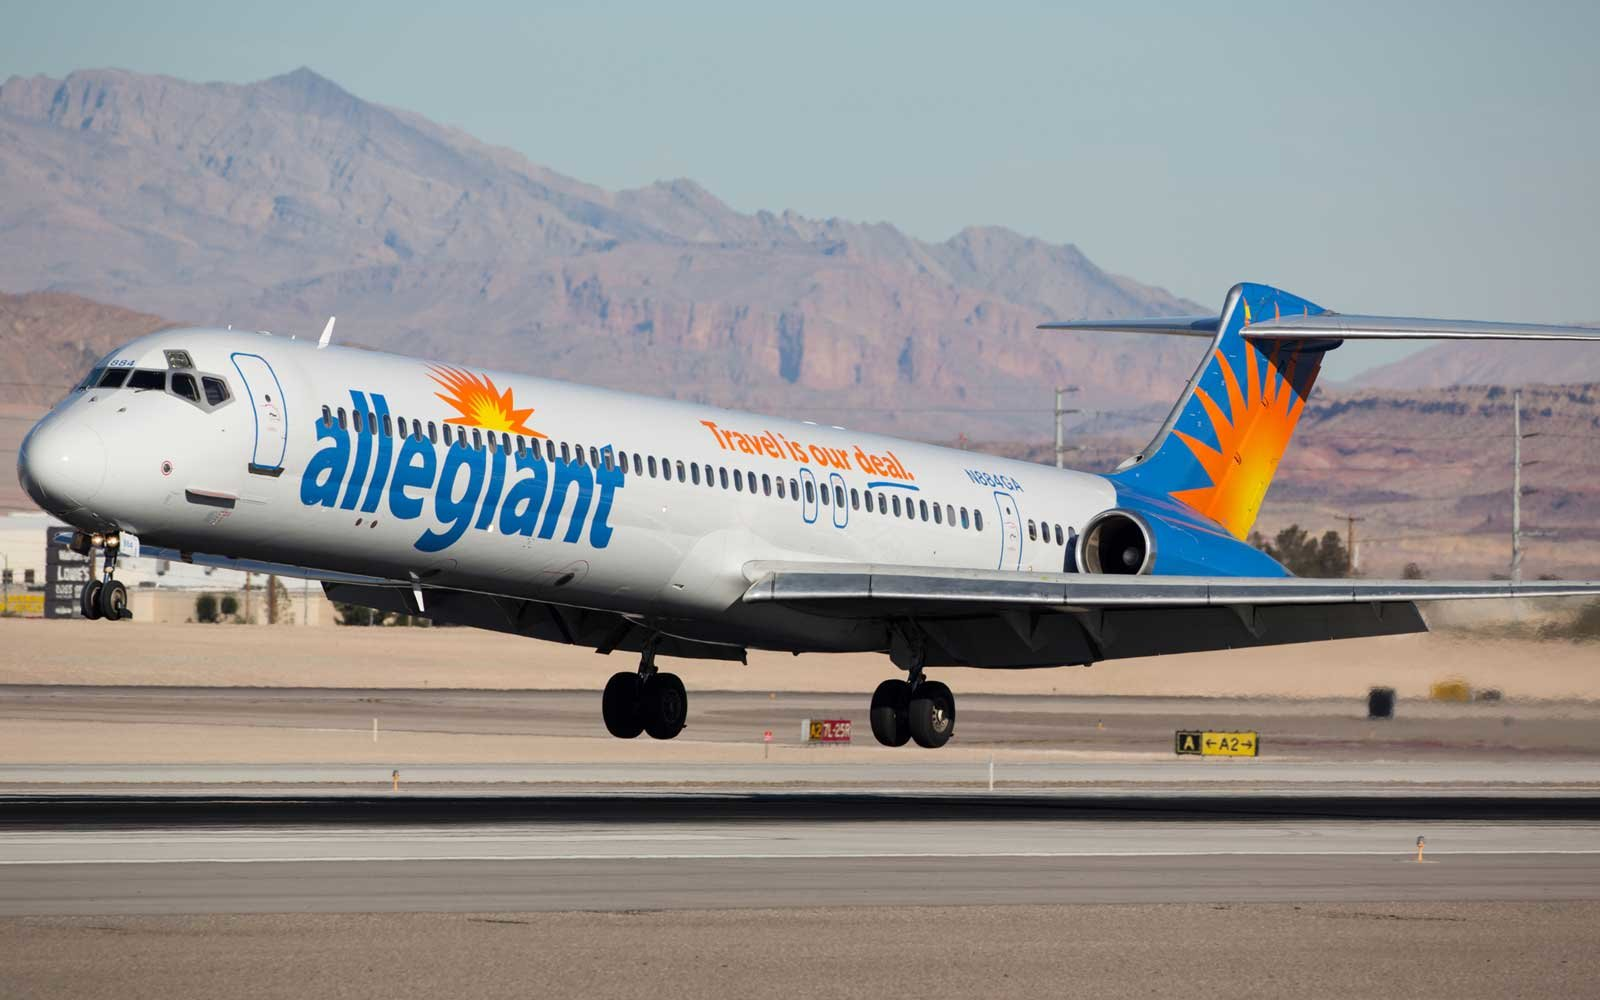 Allegiant Air Reviews: Should You Buy That Cheap Ticket